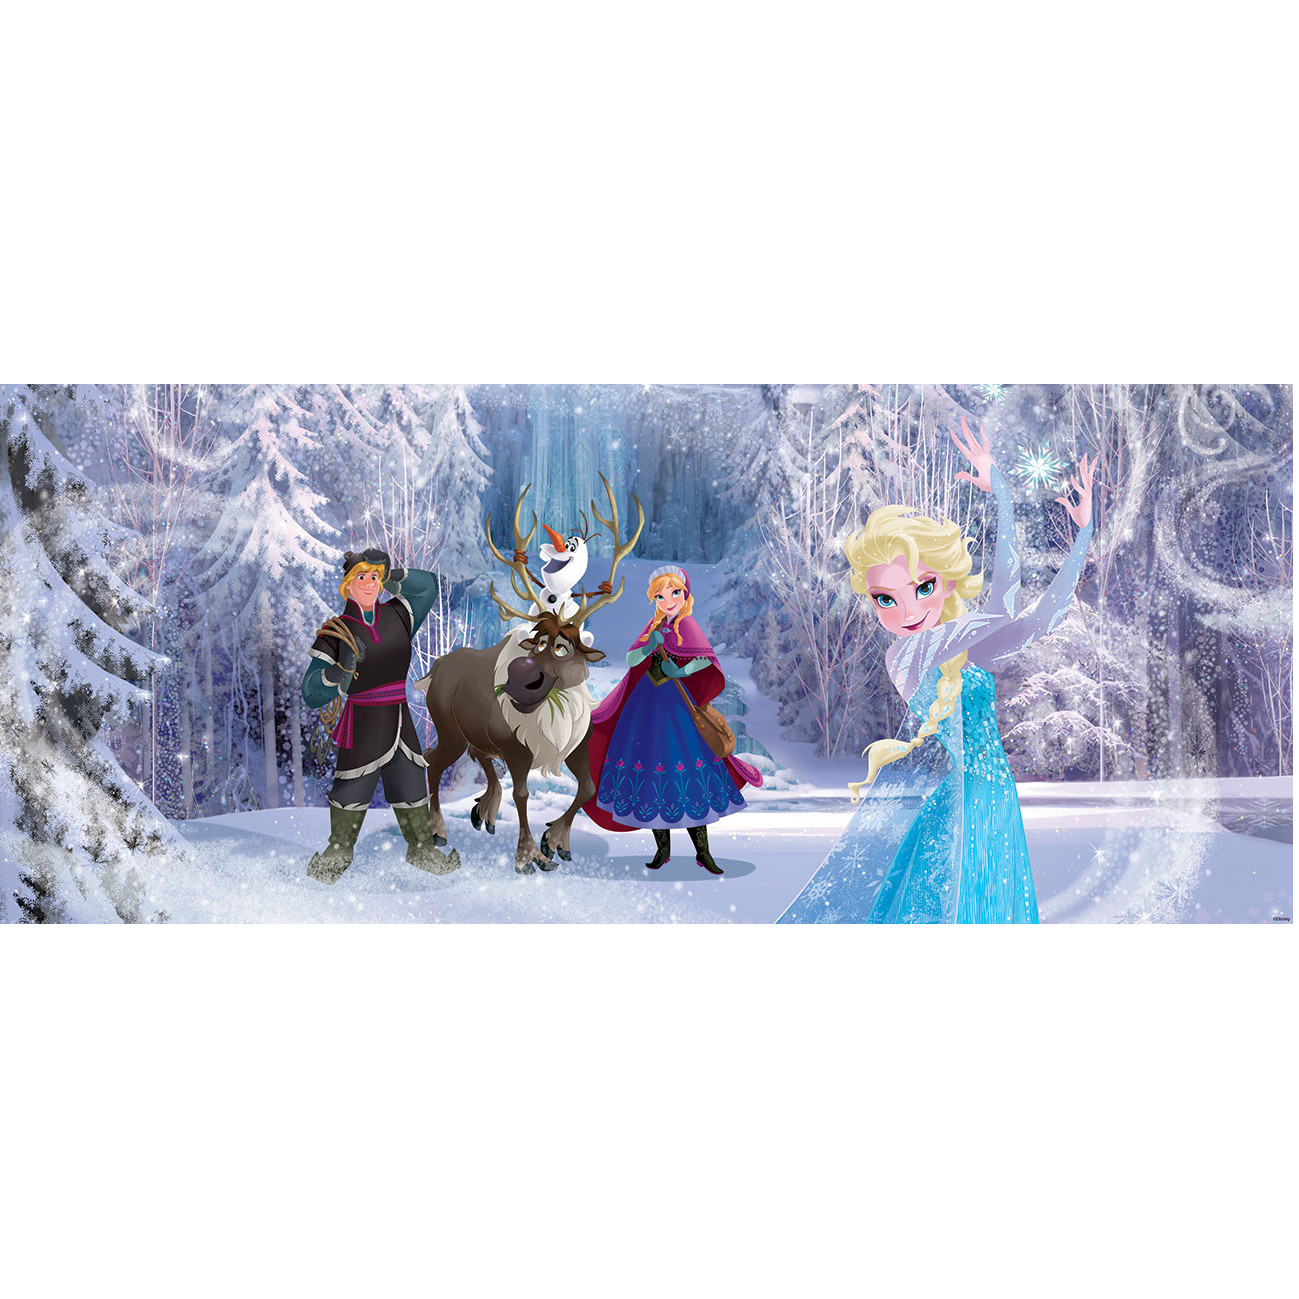 frozen reine des neiges poster panoramique papier peint 250 x 104 cm elsa anna. Black Bedroom Furniture Sets. Home Design Ideas